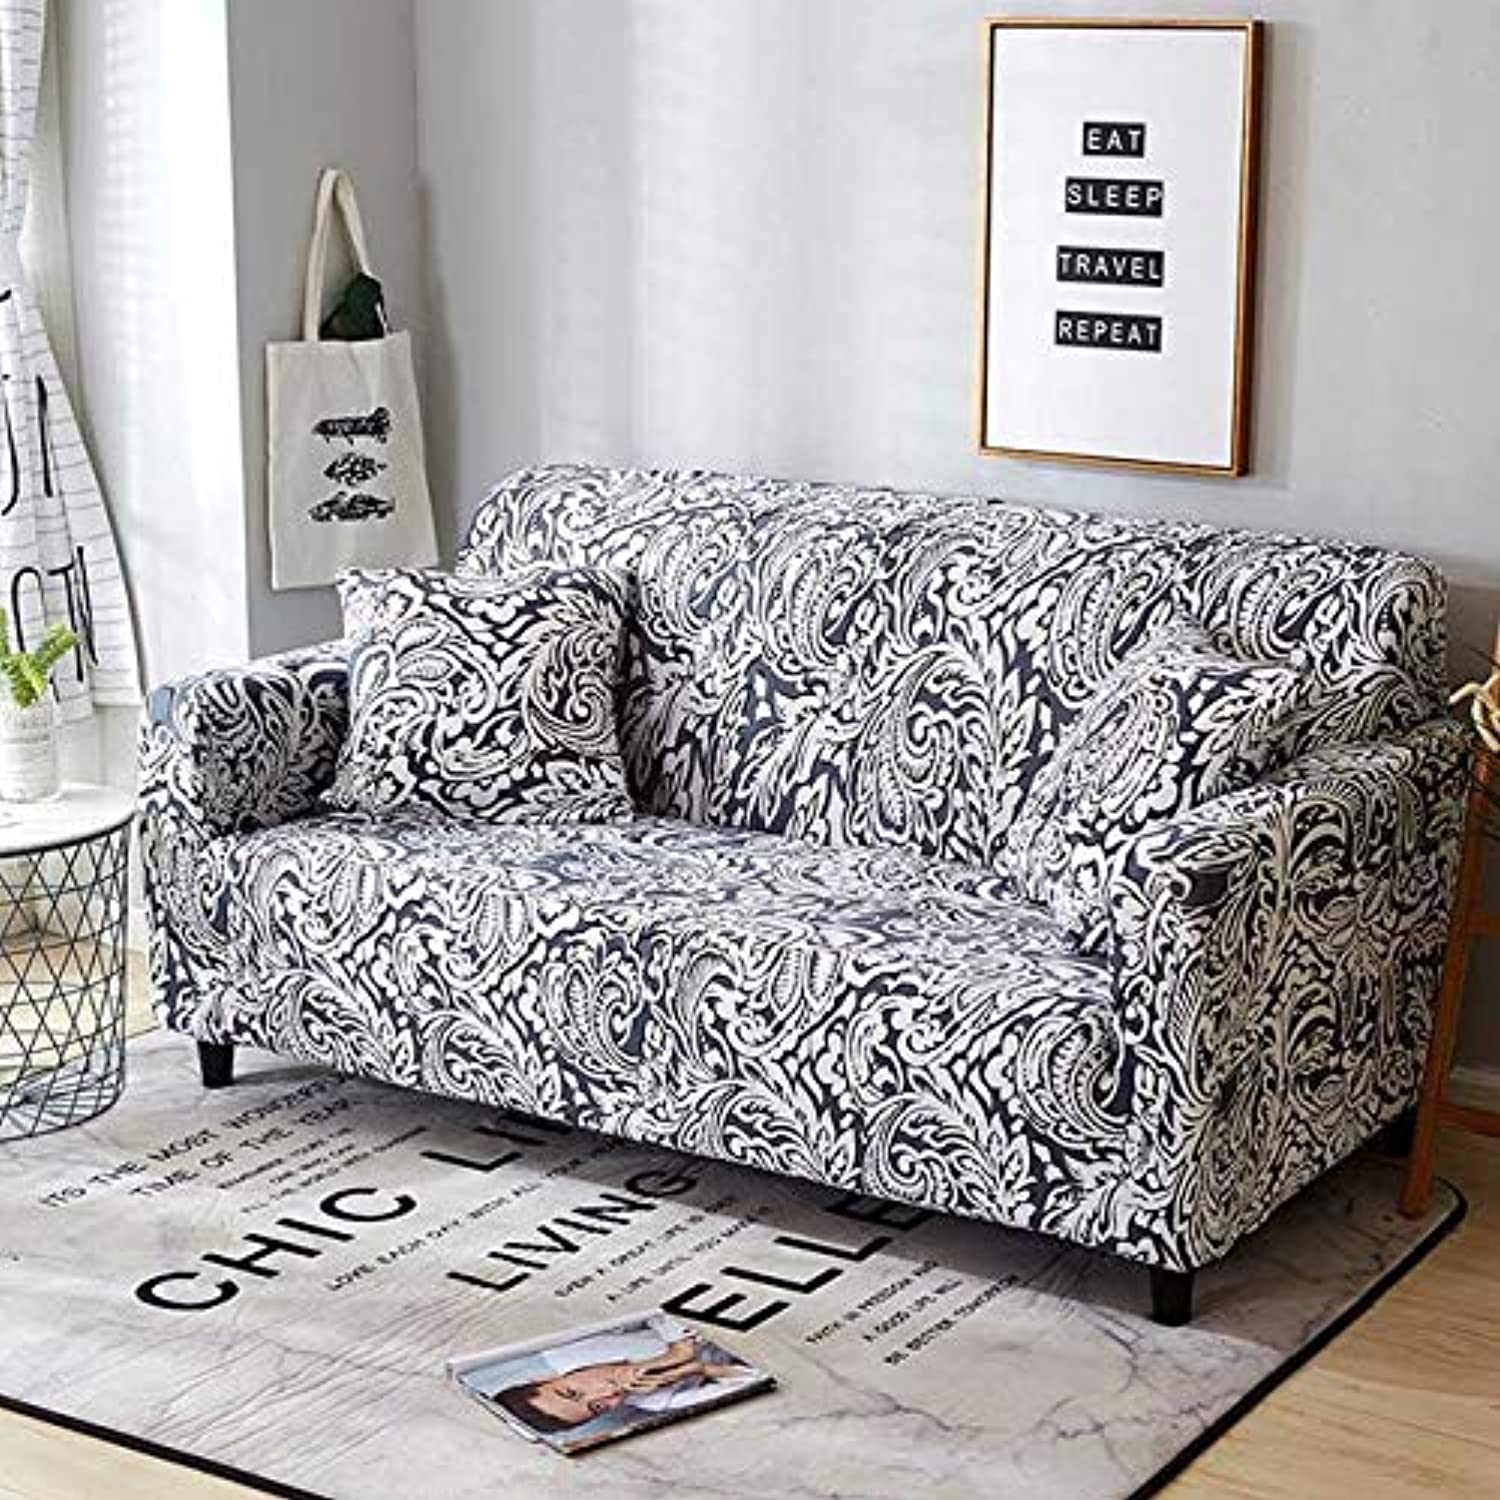 Nordic Style Modern Printing Sofa Cover Stretch Tight Wrap All-Inclusive Removable Slipcover for Living Room Furniture Covers   color 3, 2seater 145-185cm